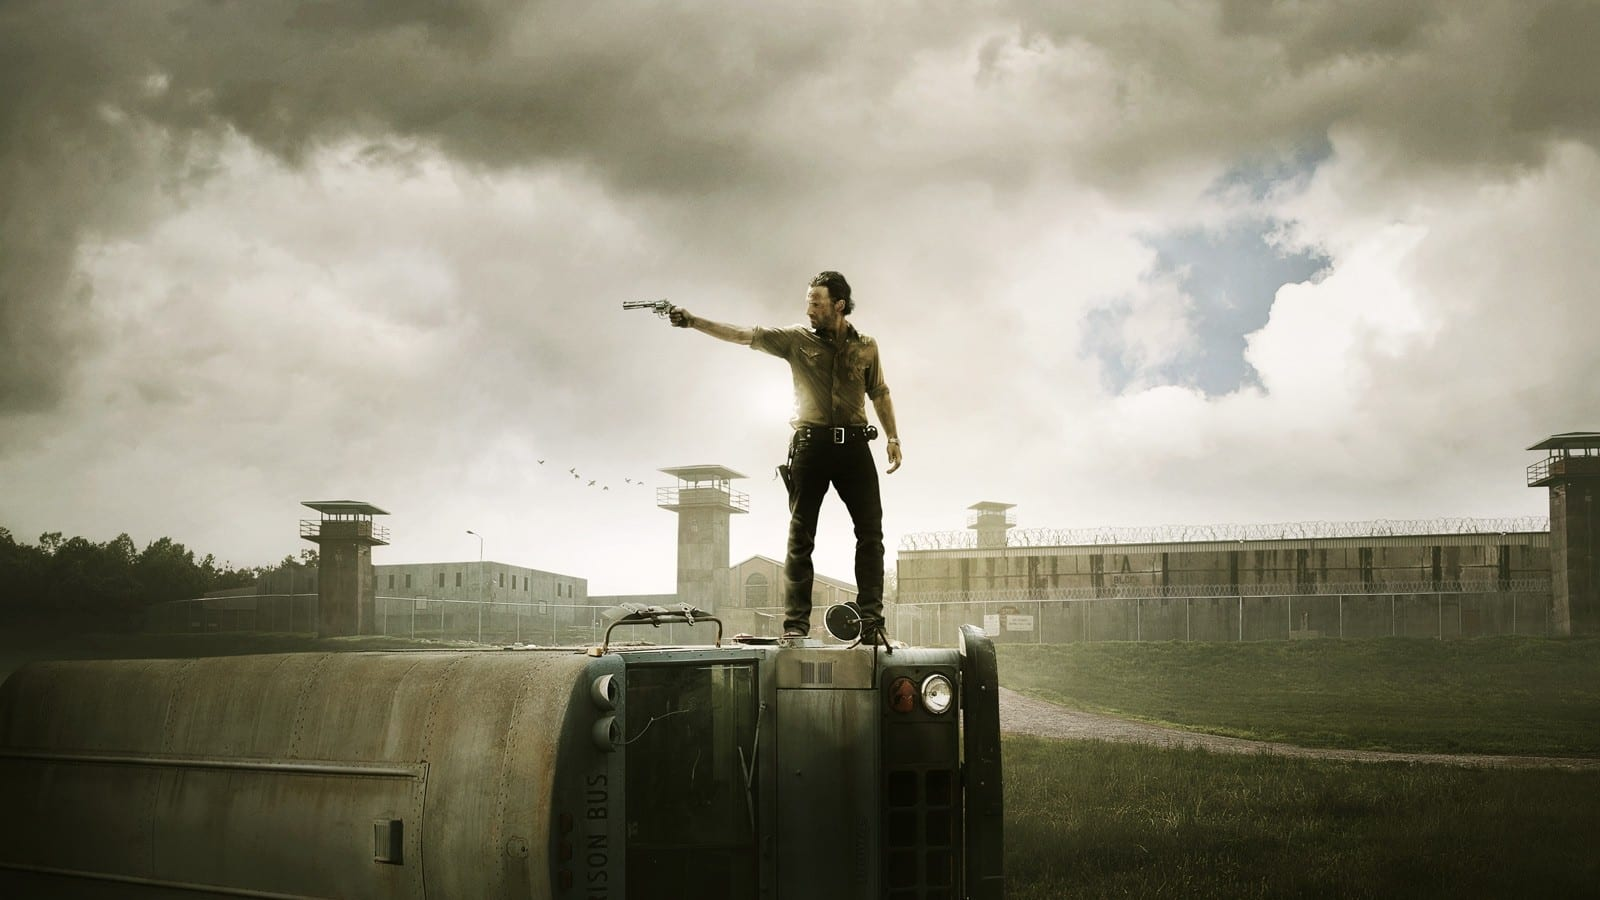 The Walking Dead Spin-Off kommt!